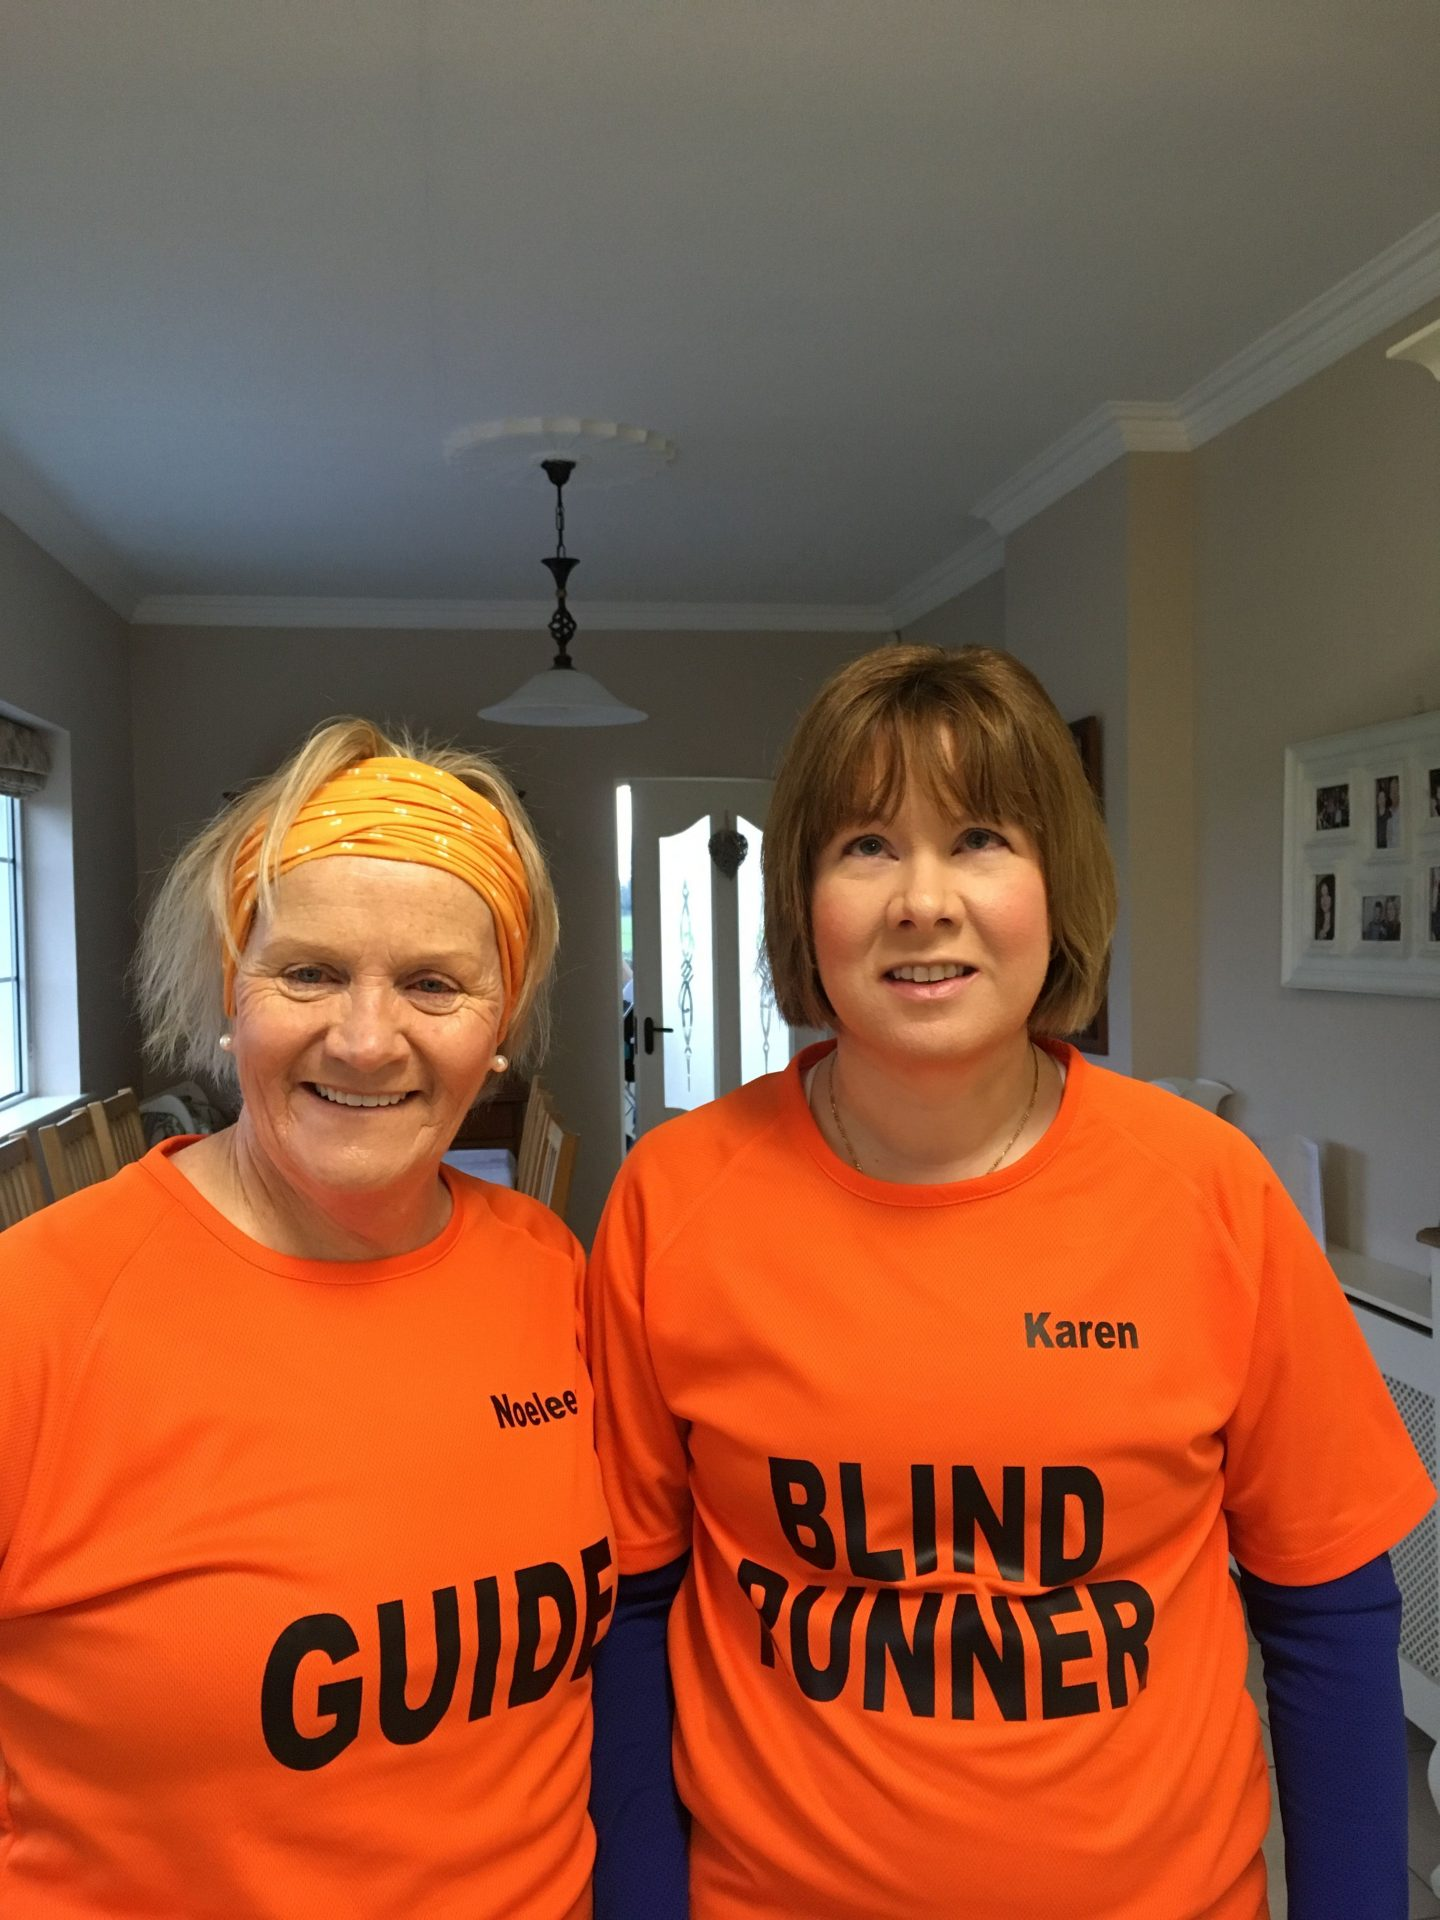 Carlow Nationalist Latest Fitness Craze Has Given Blind